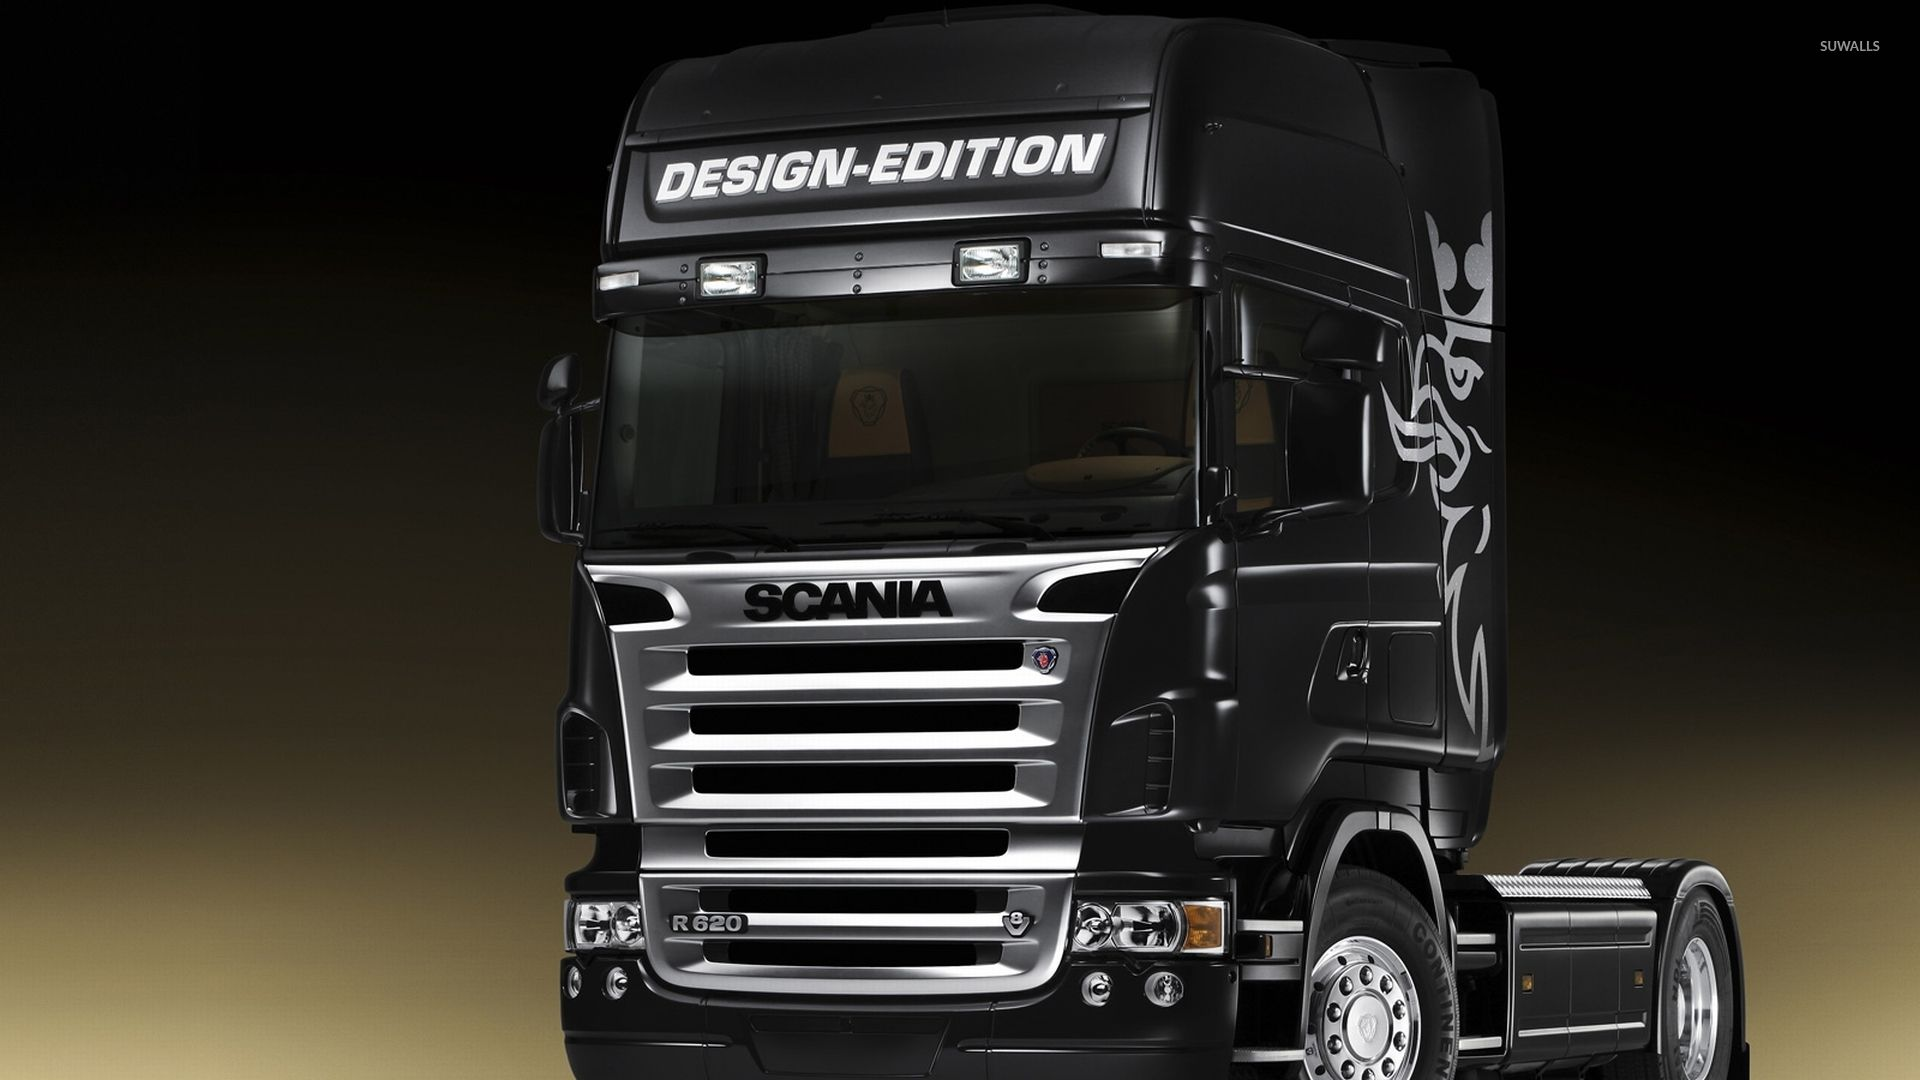 Wallpapers Scania Trucks Android Apps on Google Play